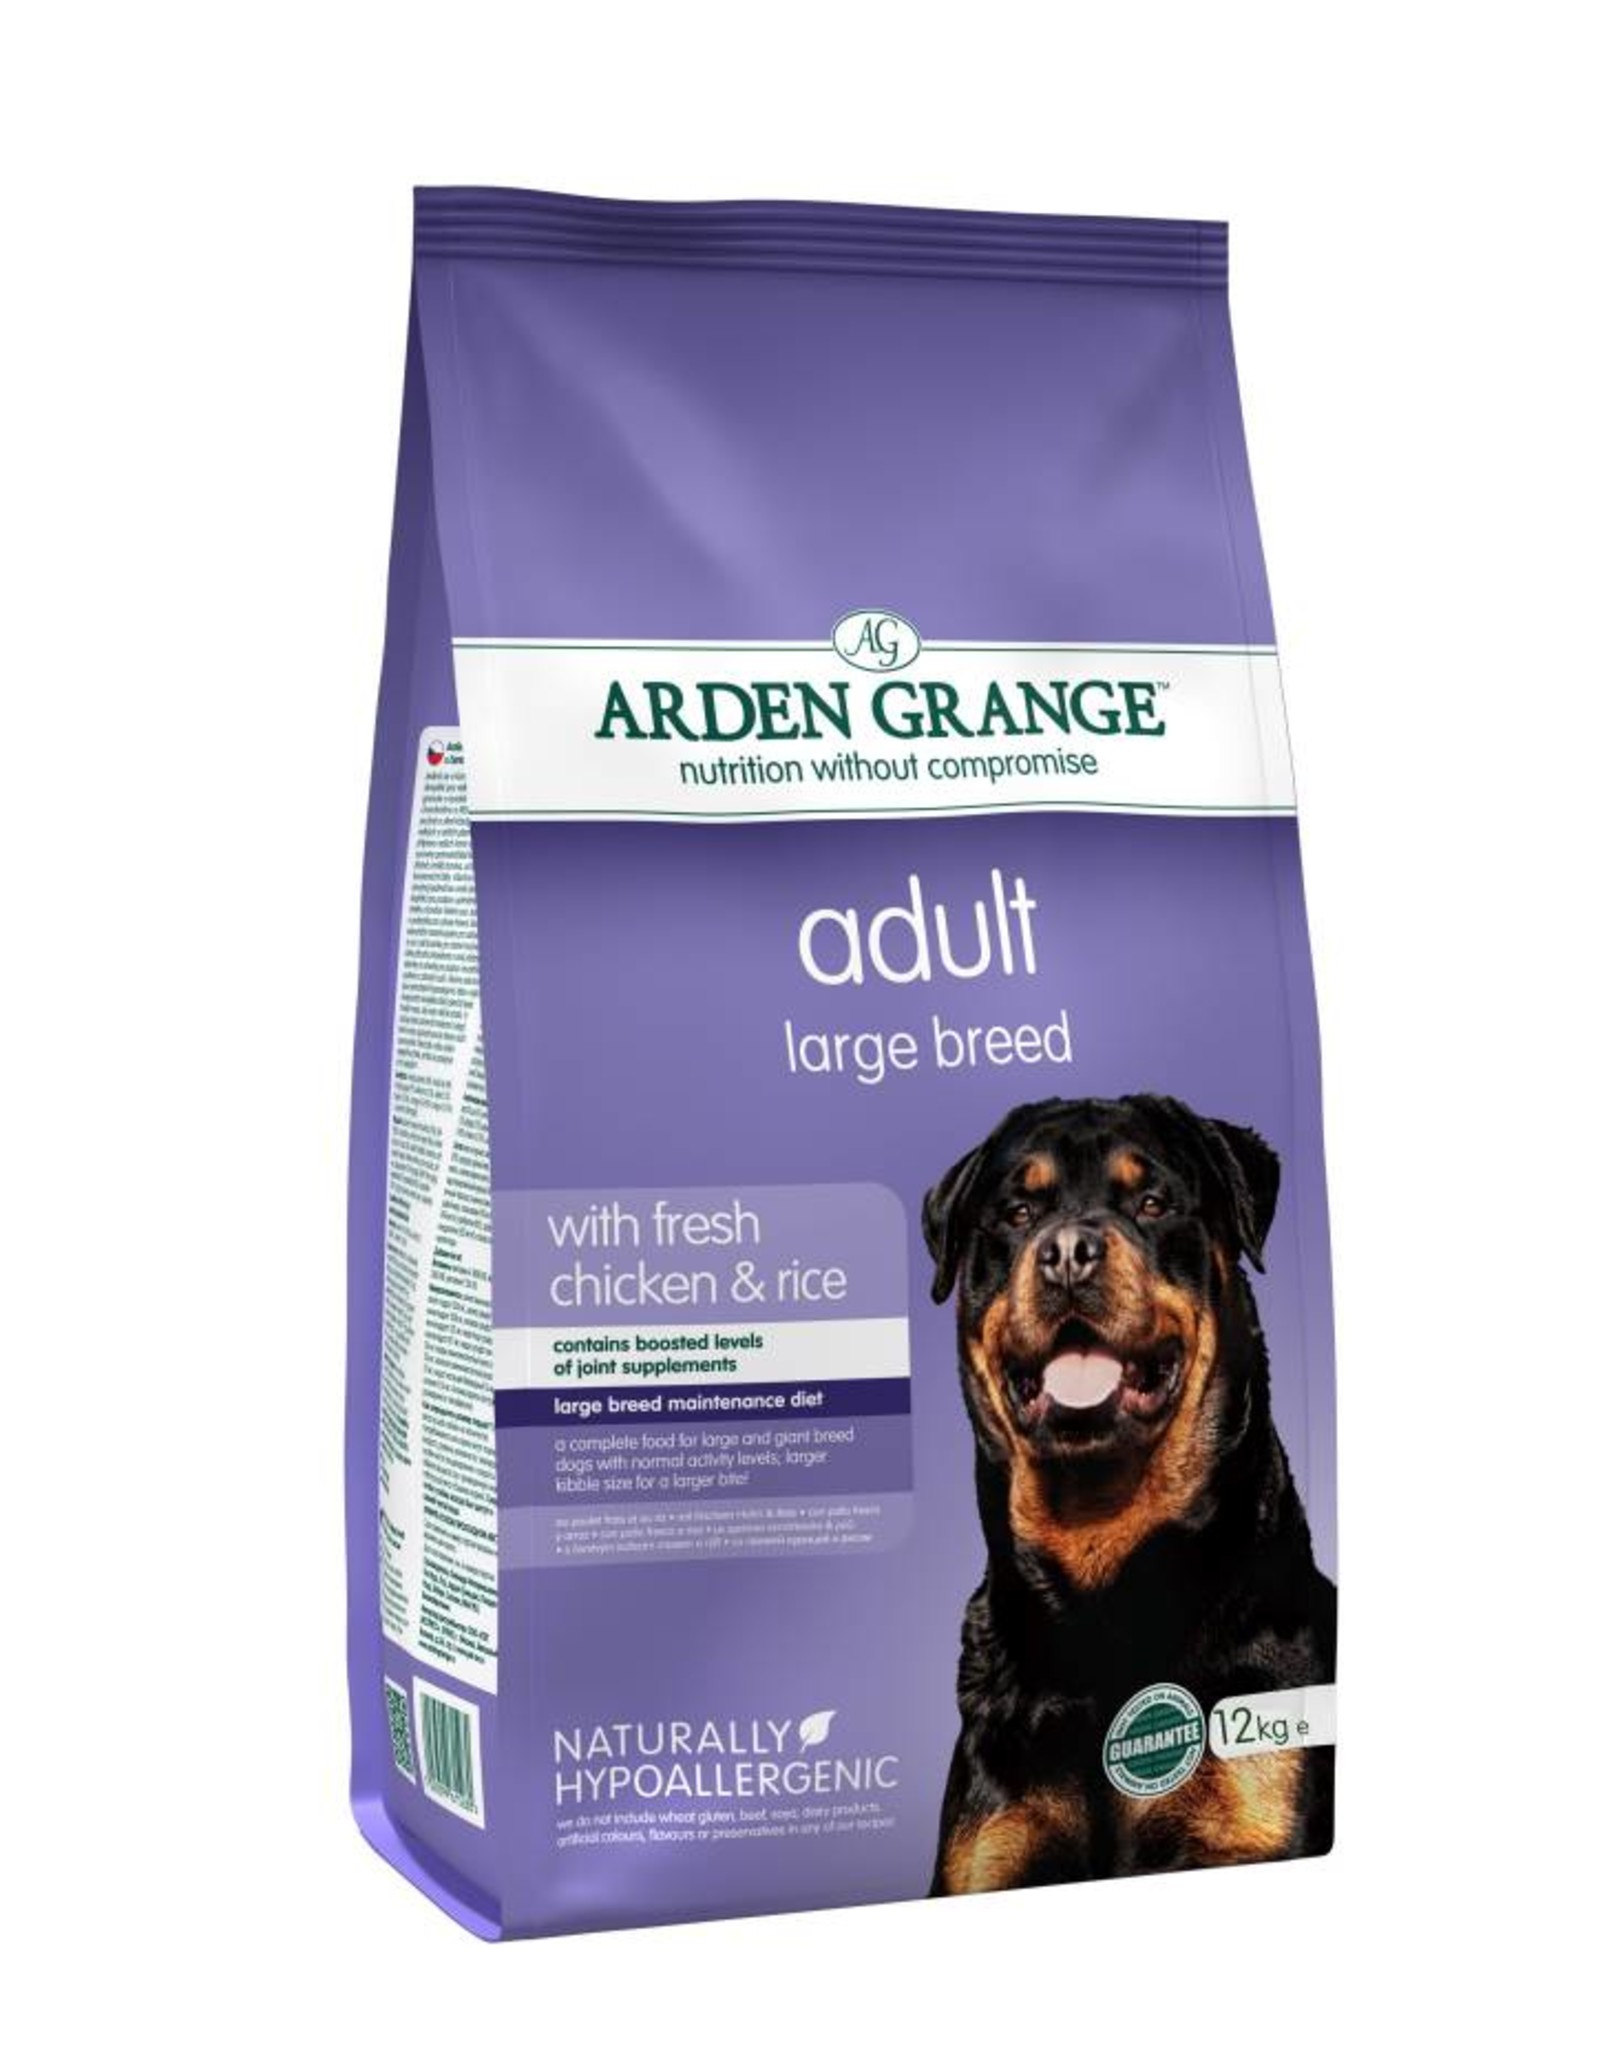 Arden Grange Adult Large Breed Dog Dry Food, Chicken & Rice